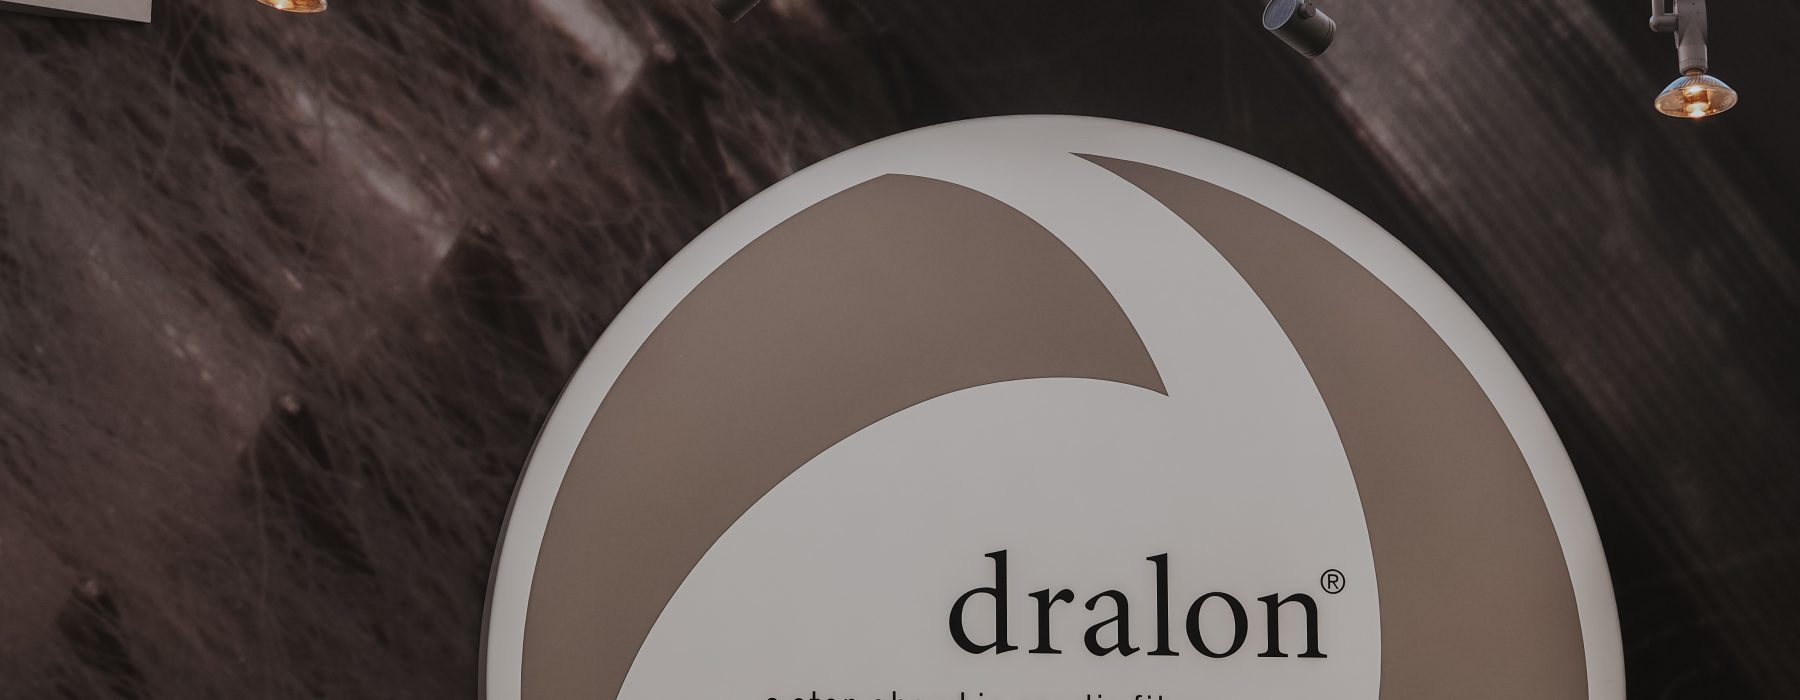 Meet dralon®